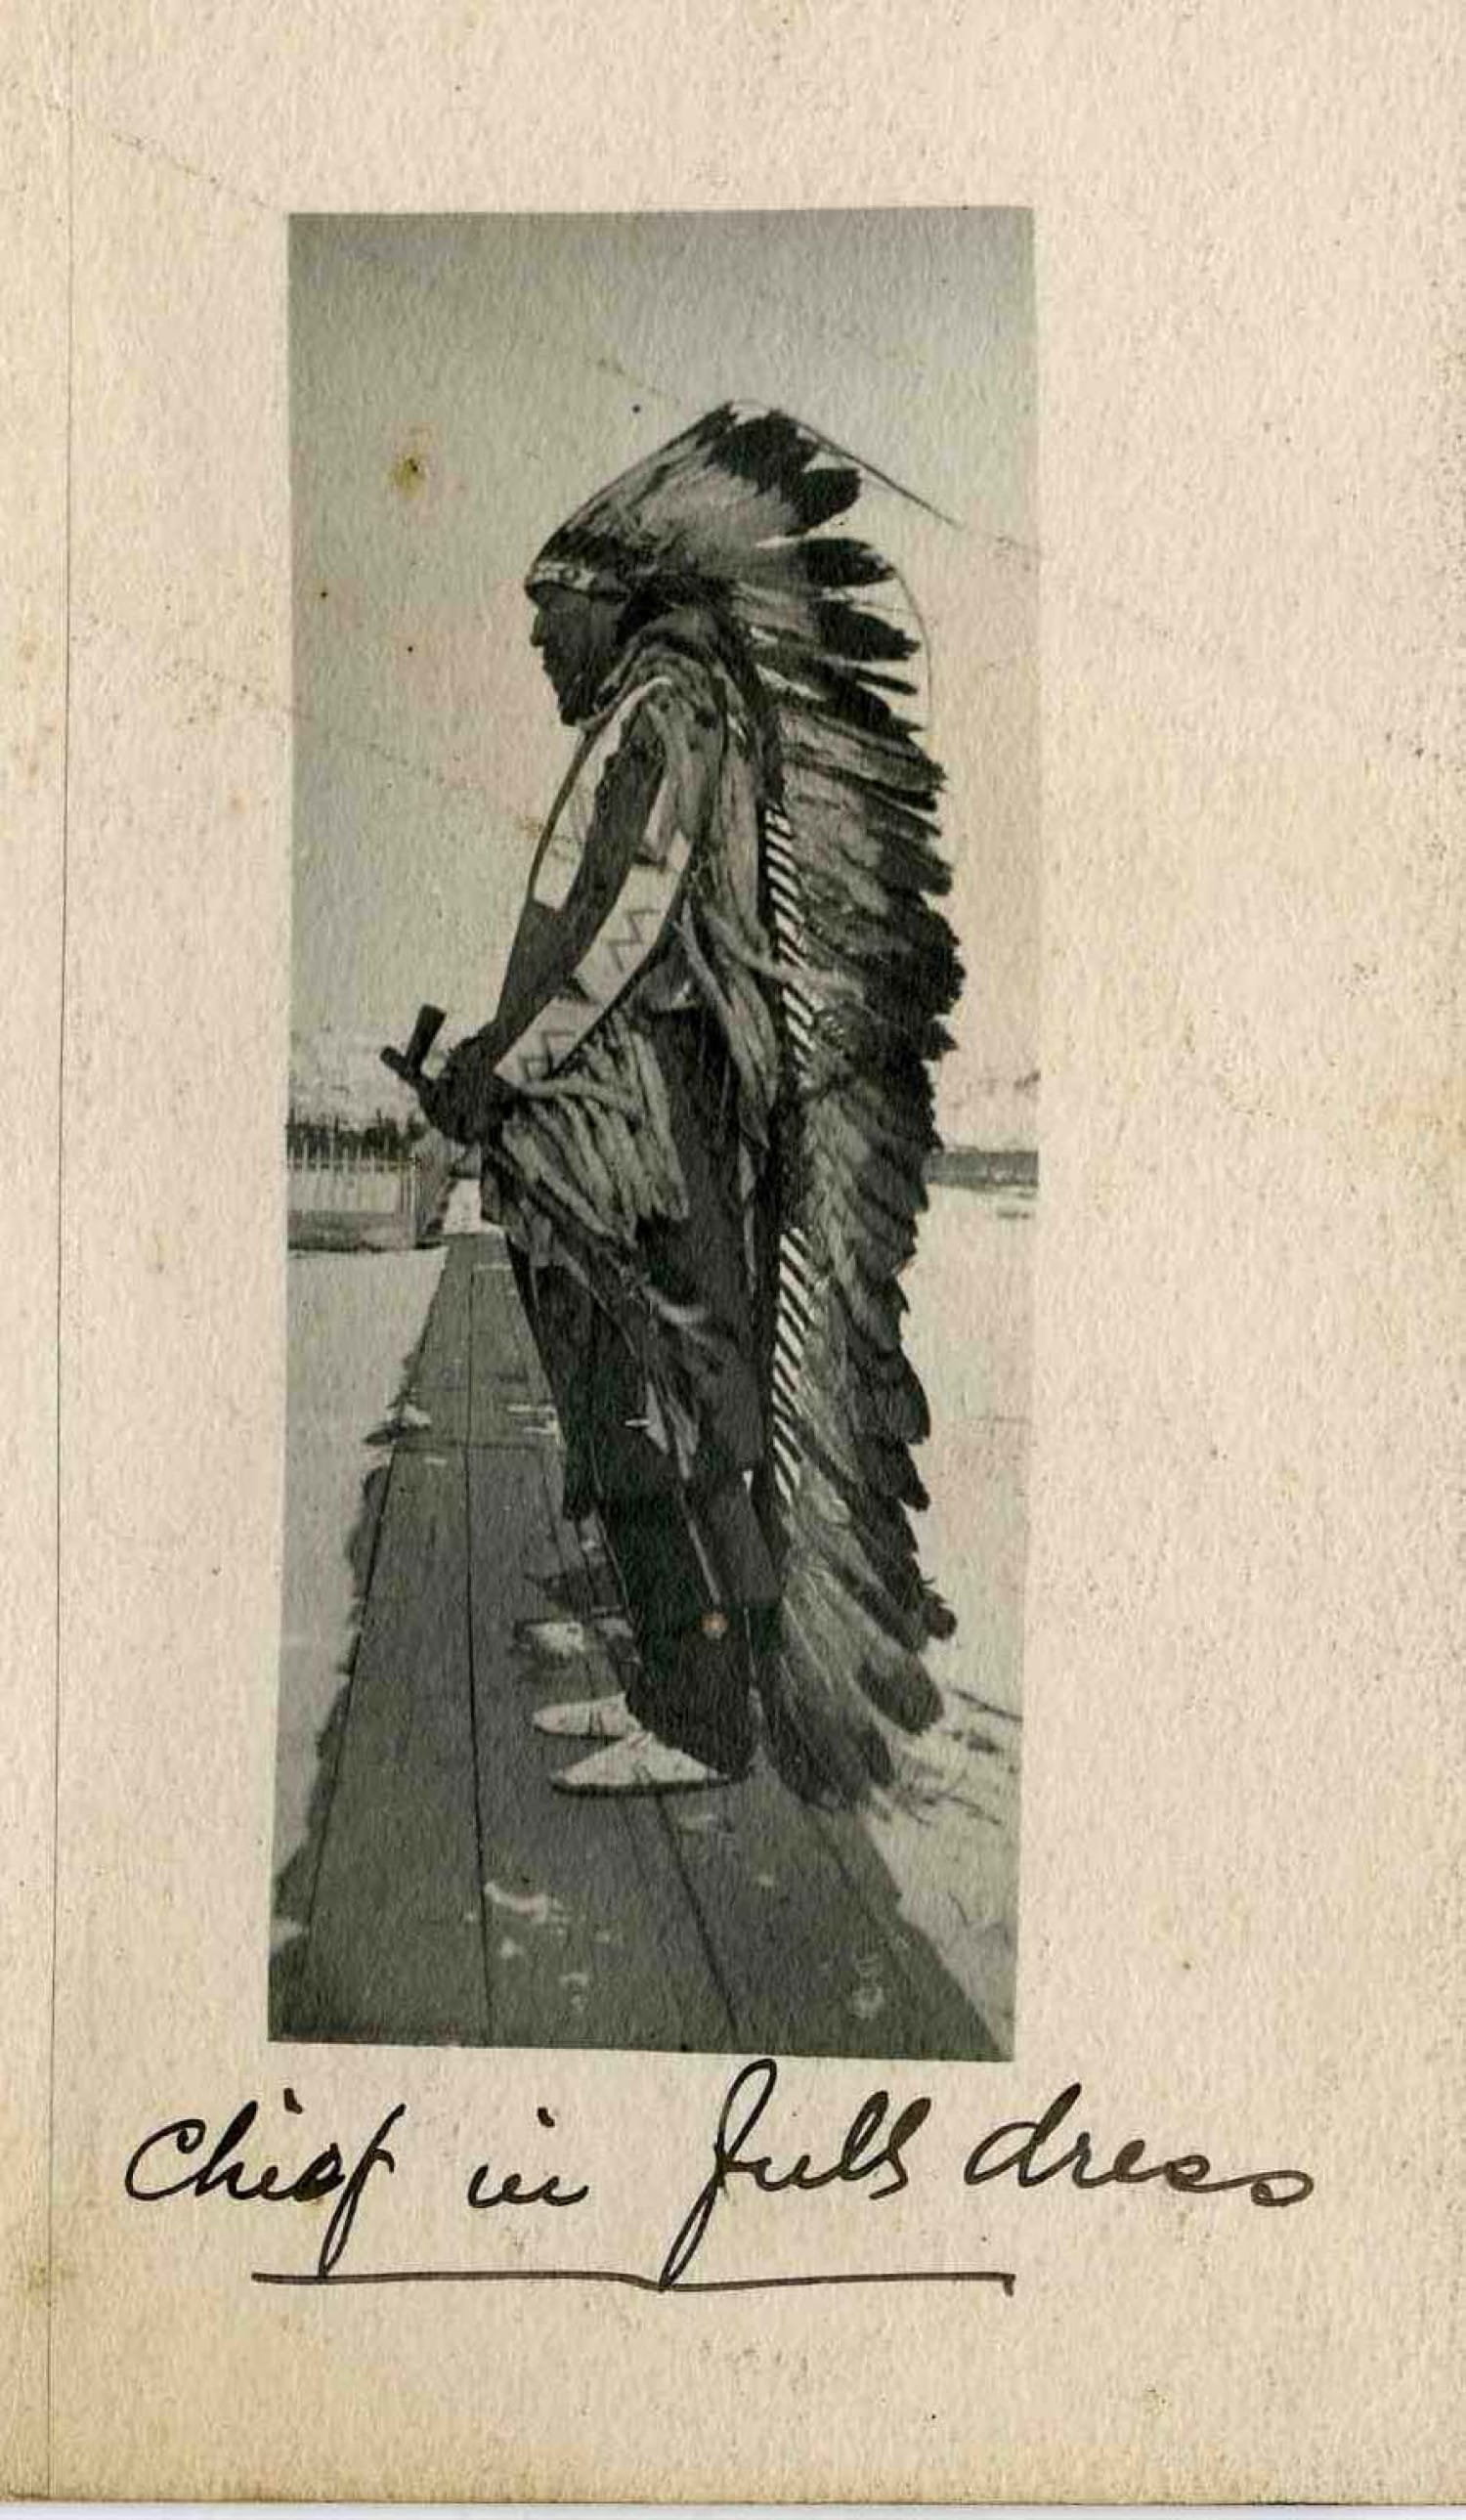 A Native American chief in traditional costume